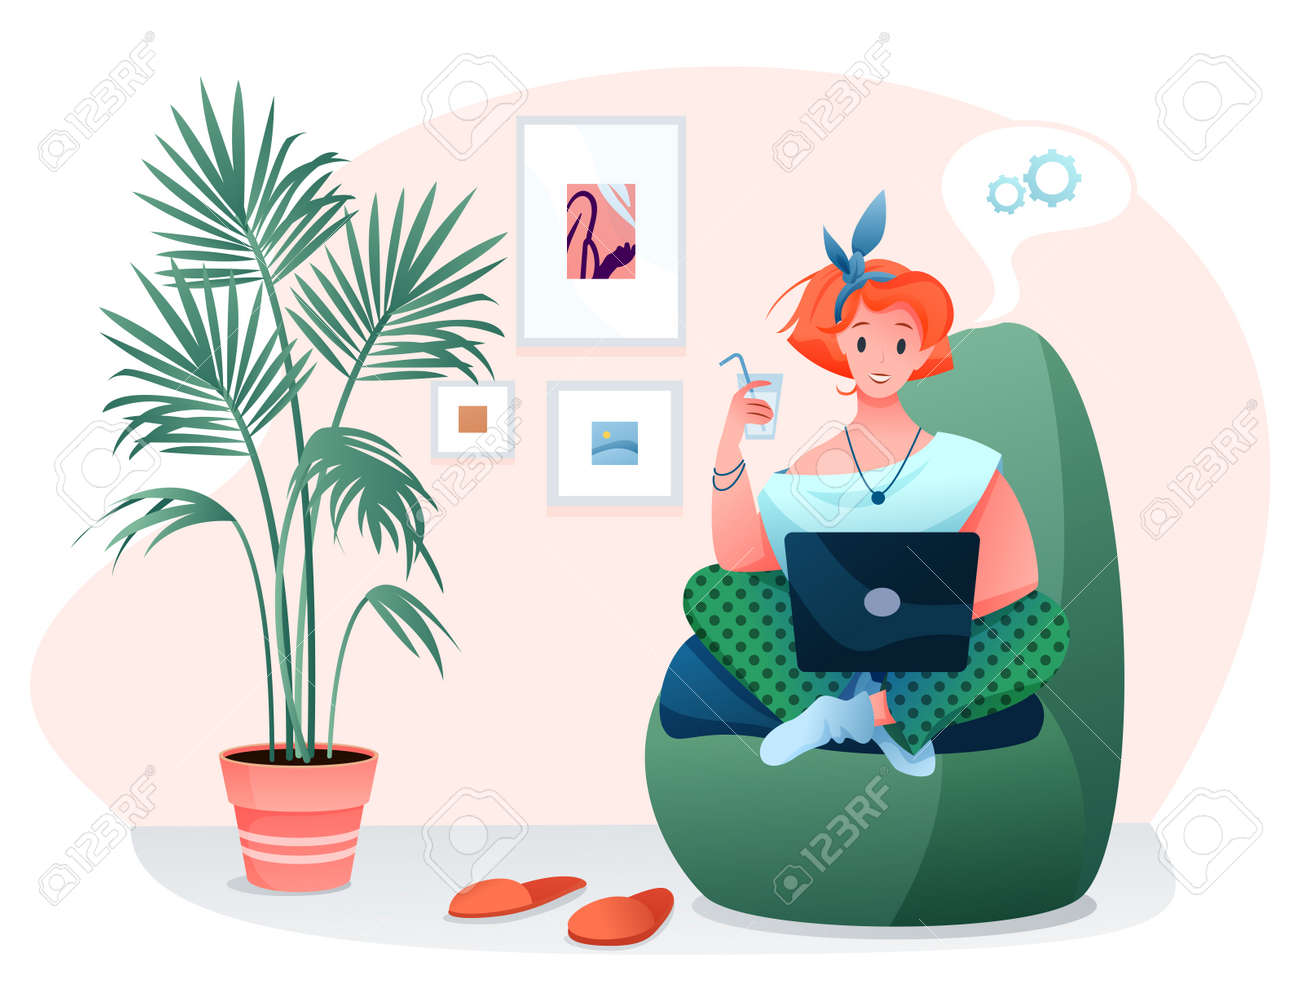 Freelance home work flat vector illustration. Cartoon woman freelancer character works online with laptop, sitting in comfortable armchair of home room interior isolated on white - 156310109